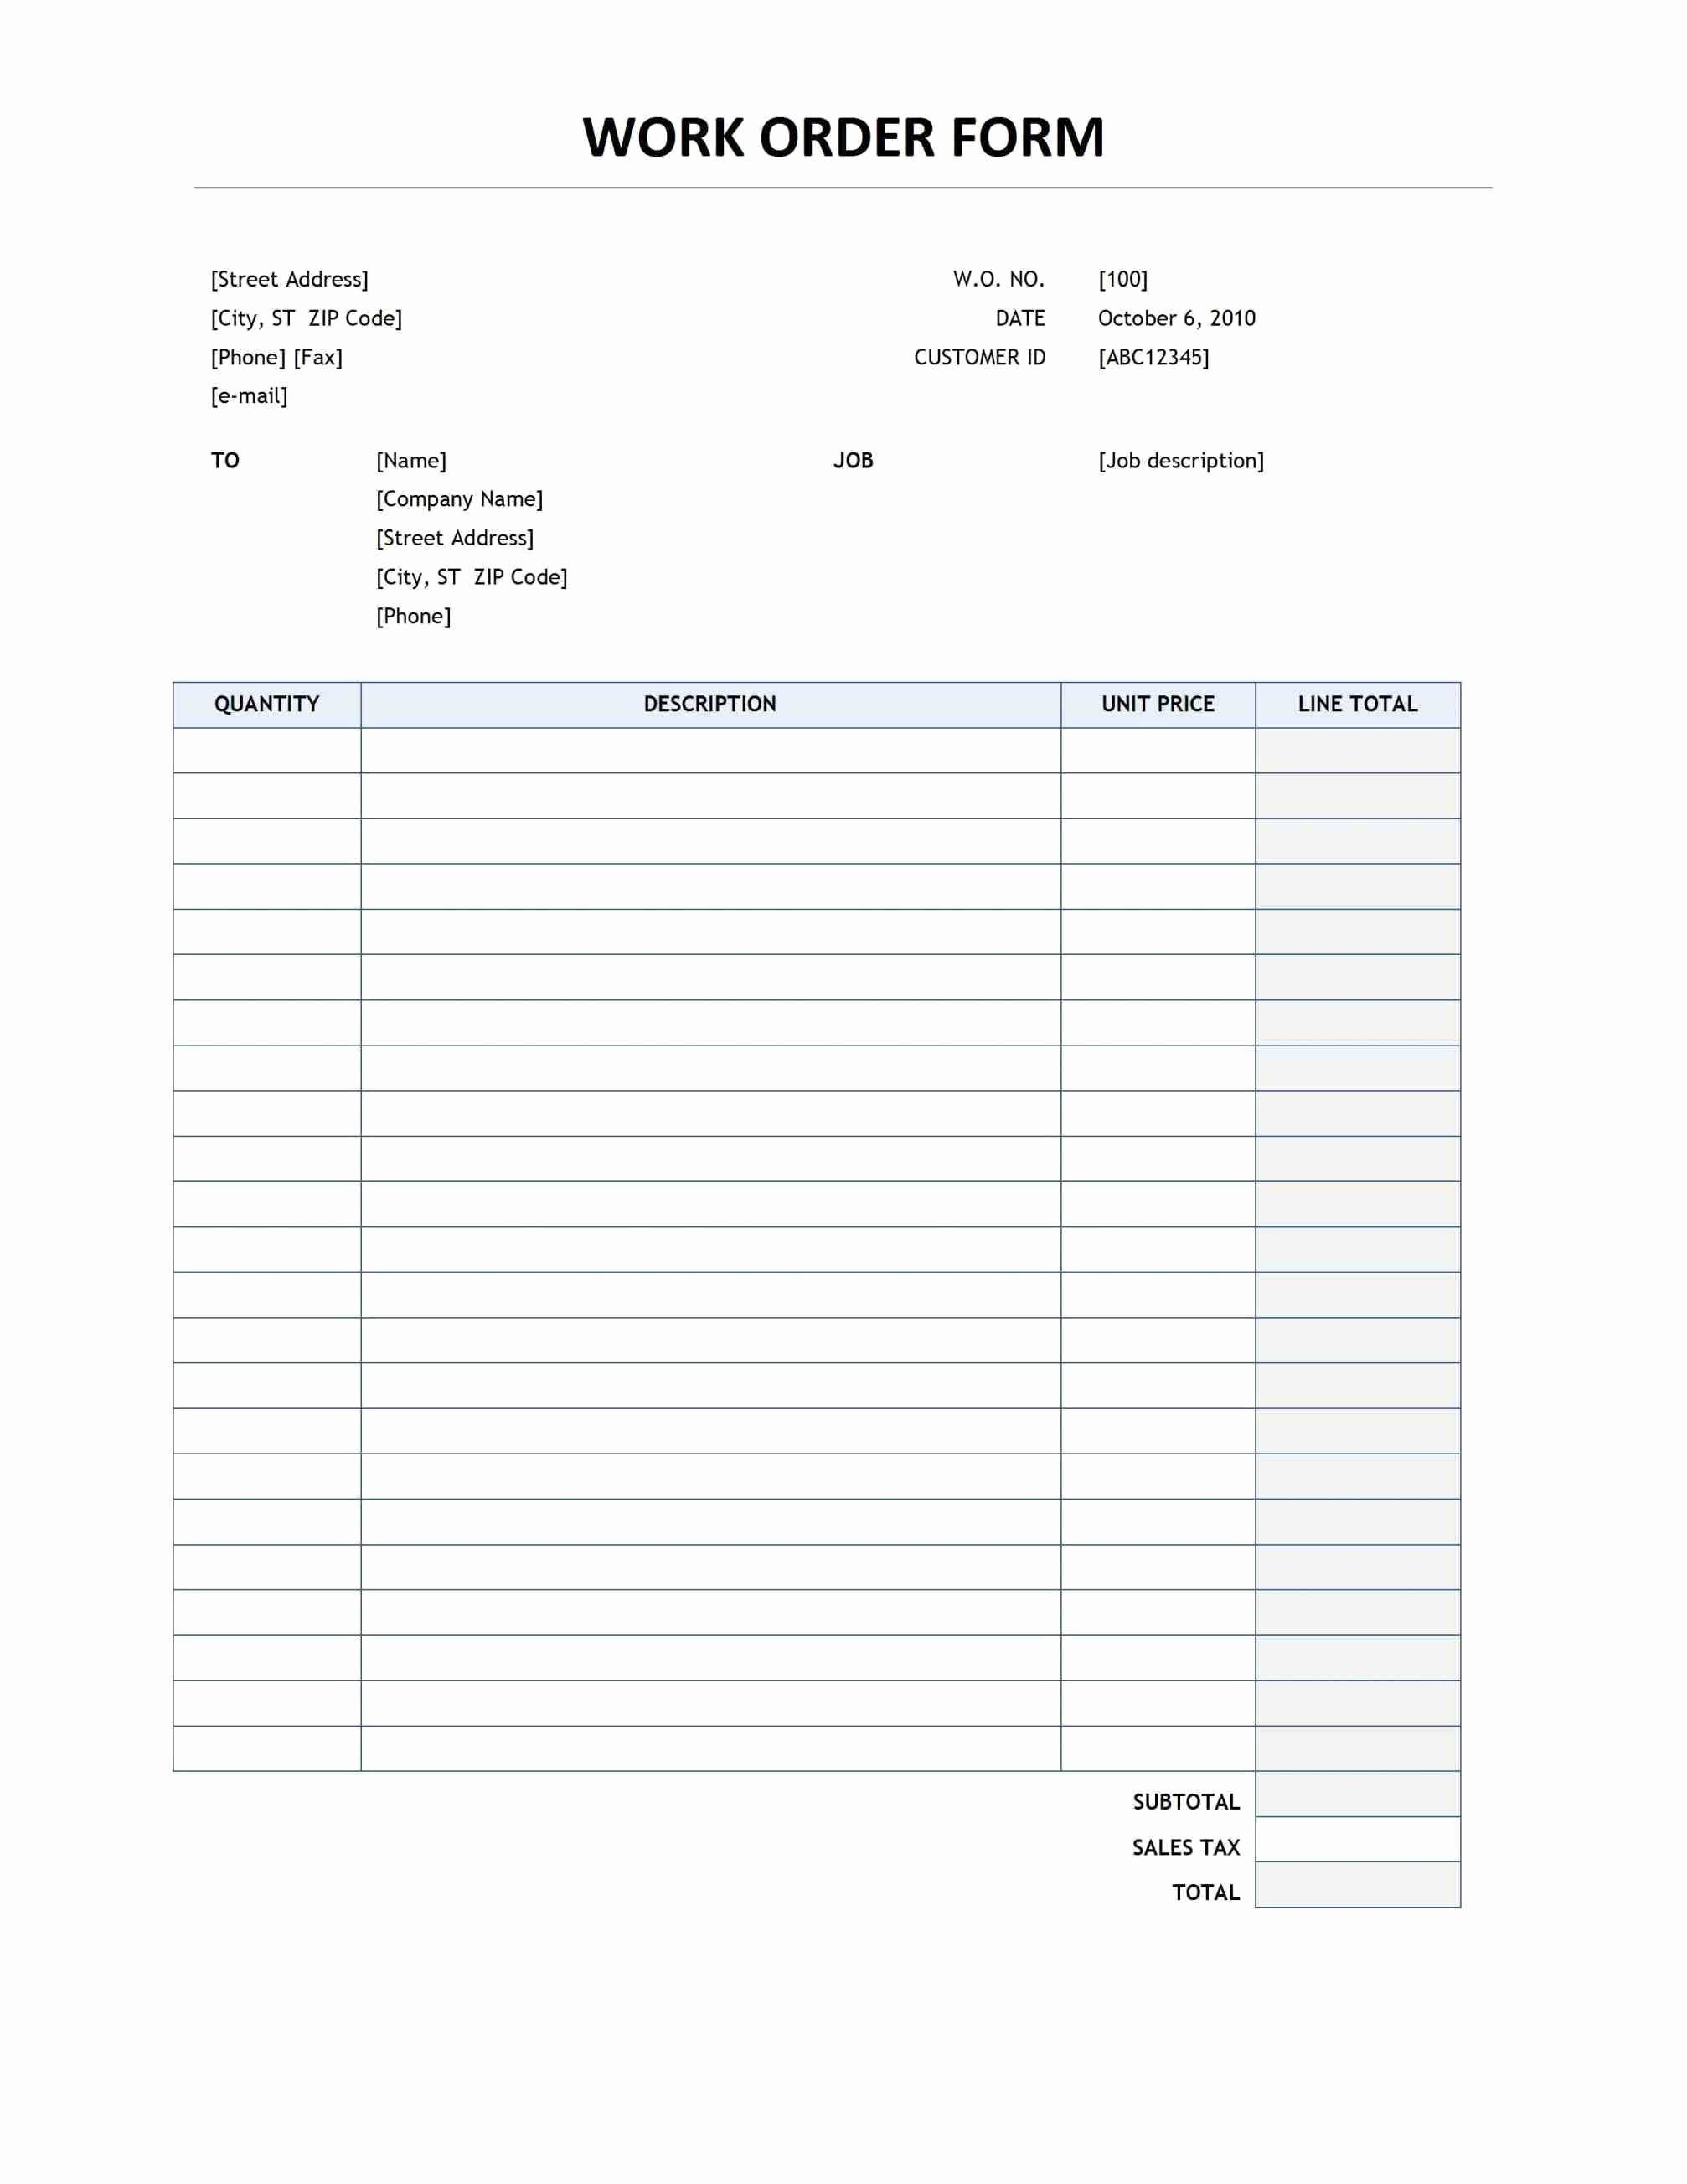 Printable order form Templates Luxury This Initiates the Responsibility Of Providing Details